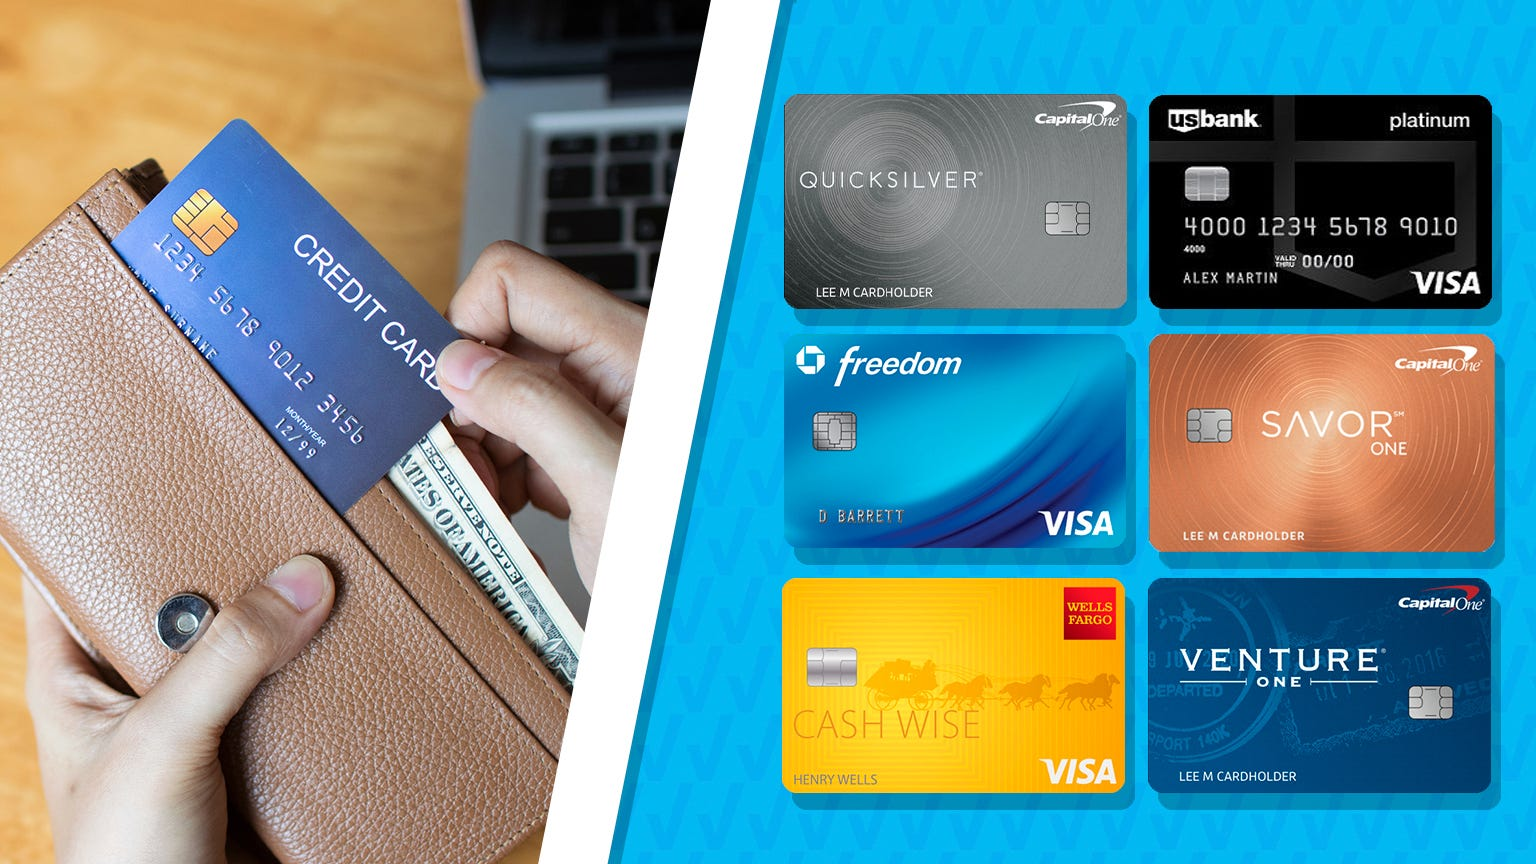 The best credit cards for saving money of 2019: Reviewed